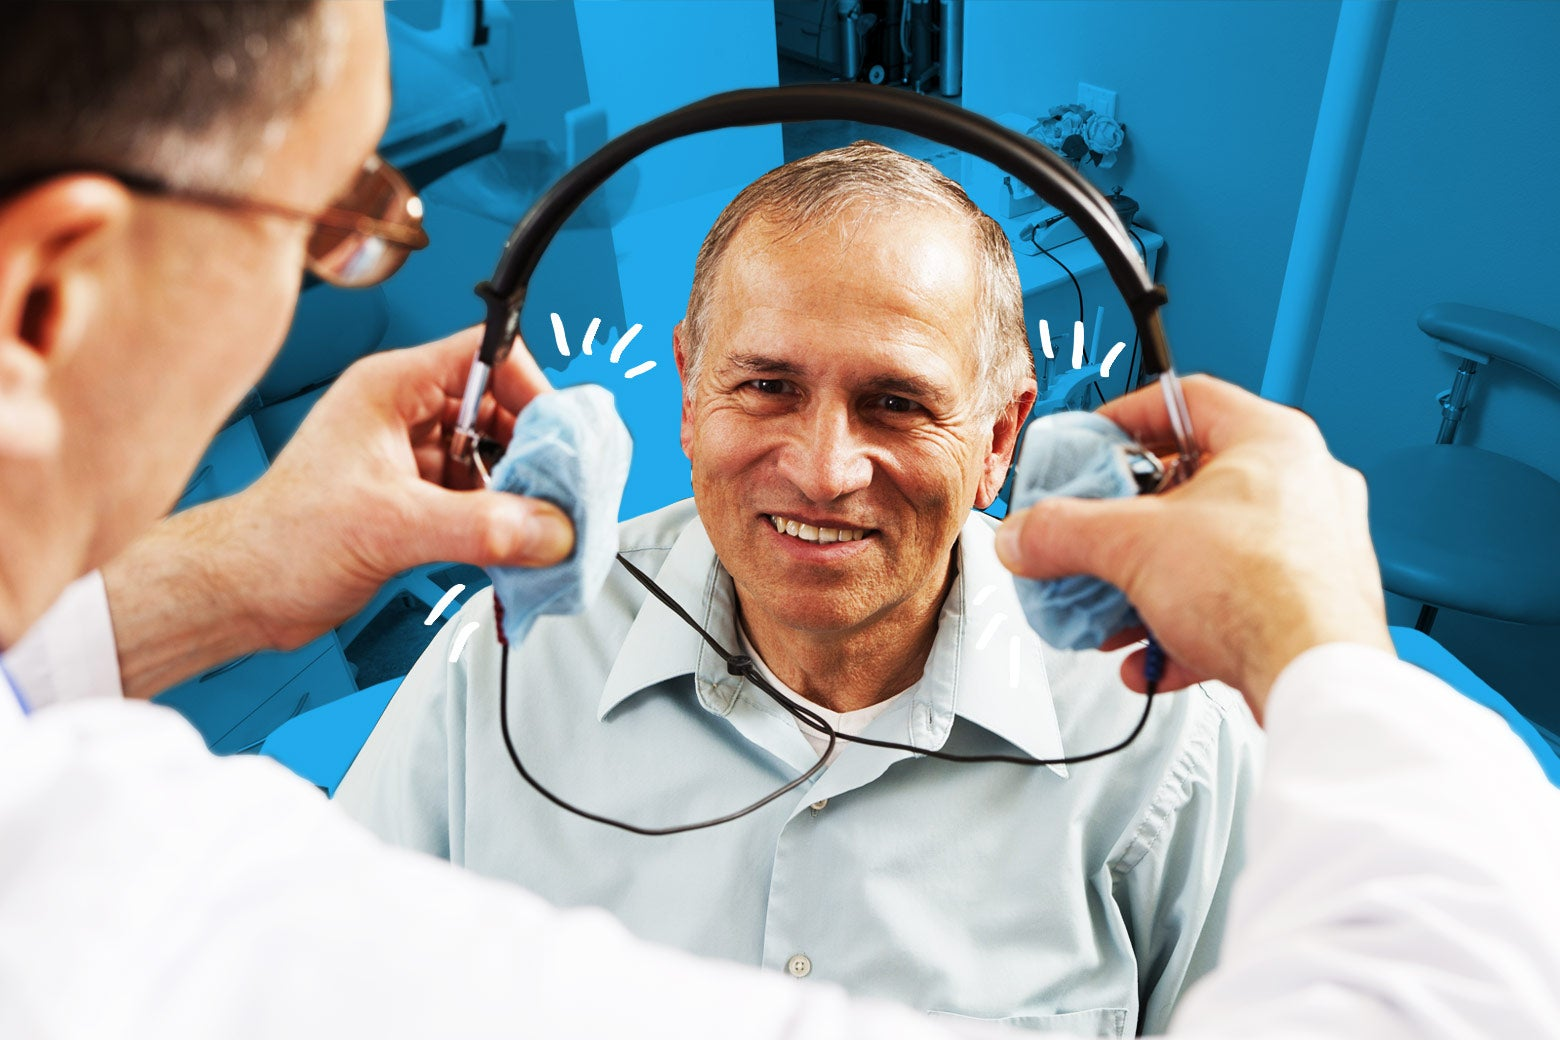 A dentist presents a patient with headphones.